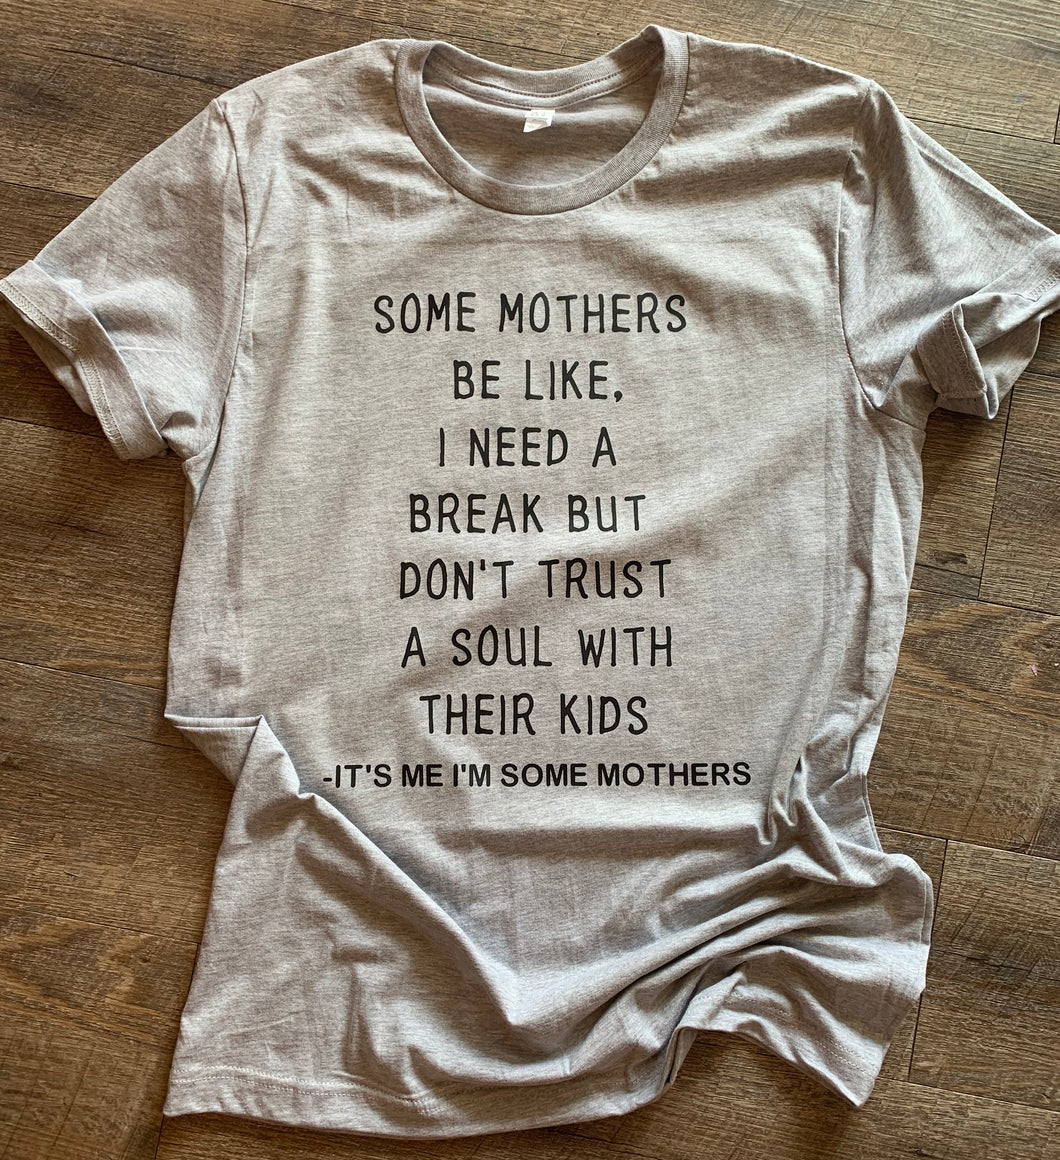 Some mothers be like I need a break but don't trust a soul with their kids it's me I'm some mothers funny graphic tee - Mavictoria Designs Hot Press Express